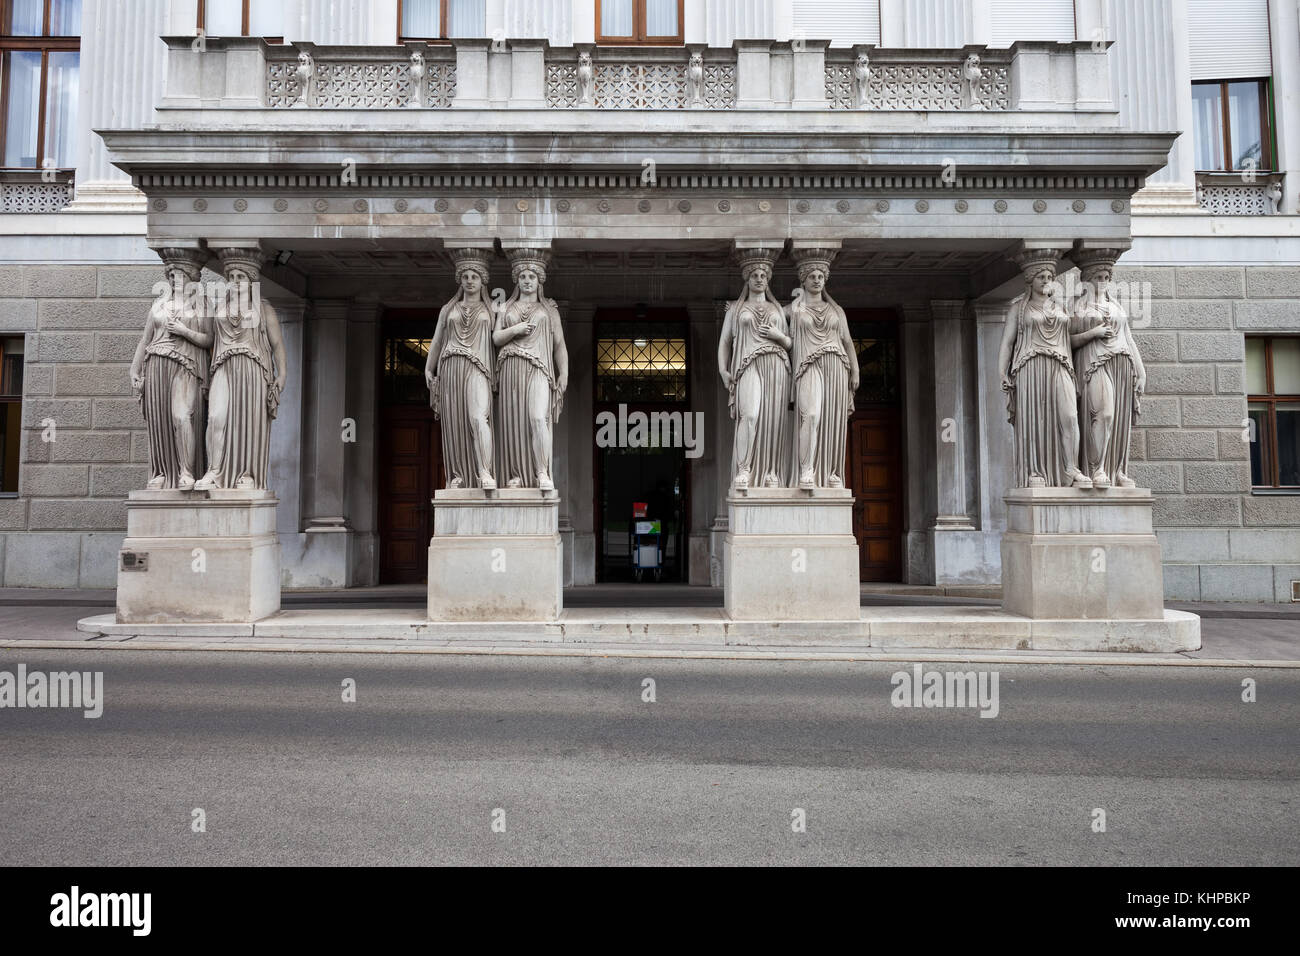 Caryatids ancient Greek female figures as entablature supporting columns, side entrance to the Austrian Parliament - Stock Image